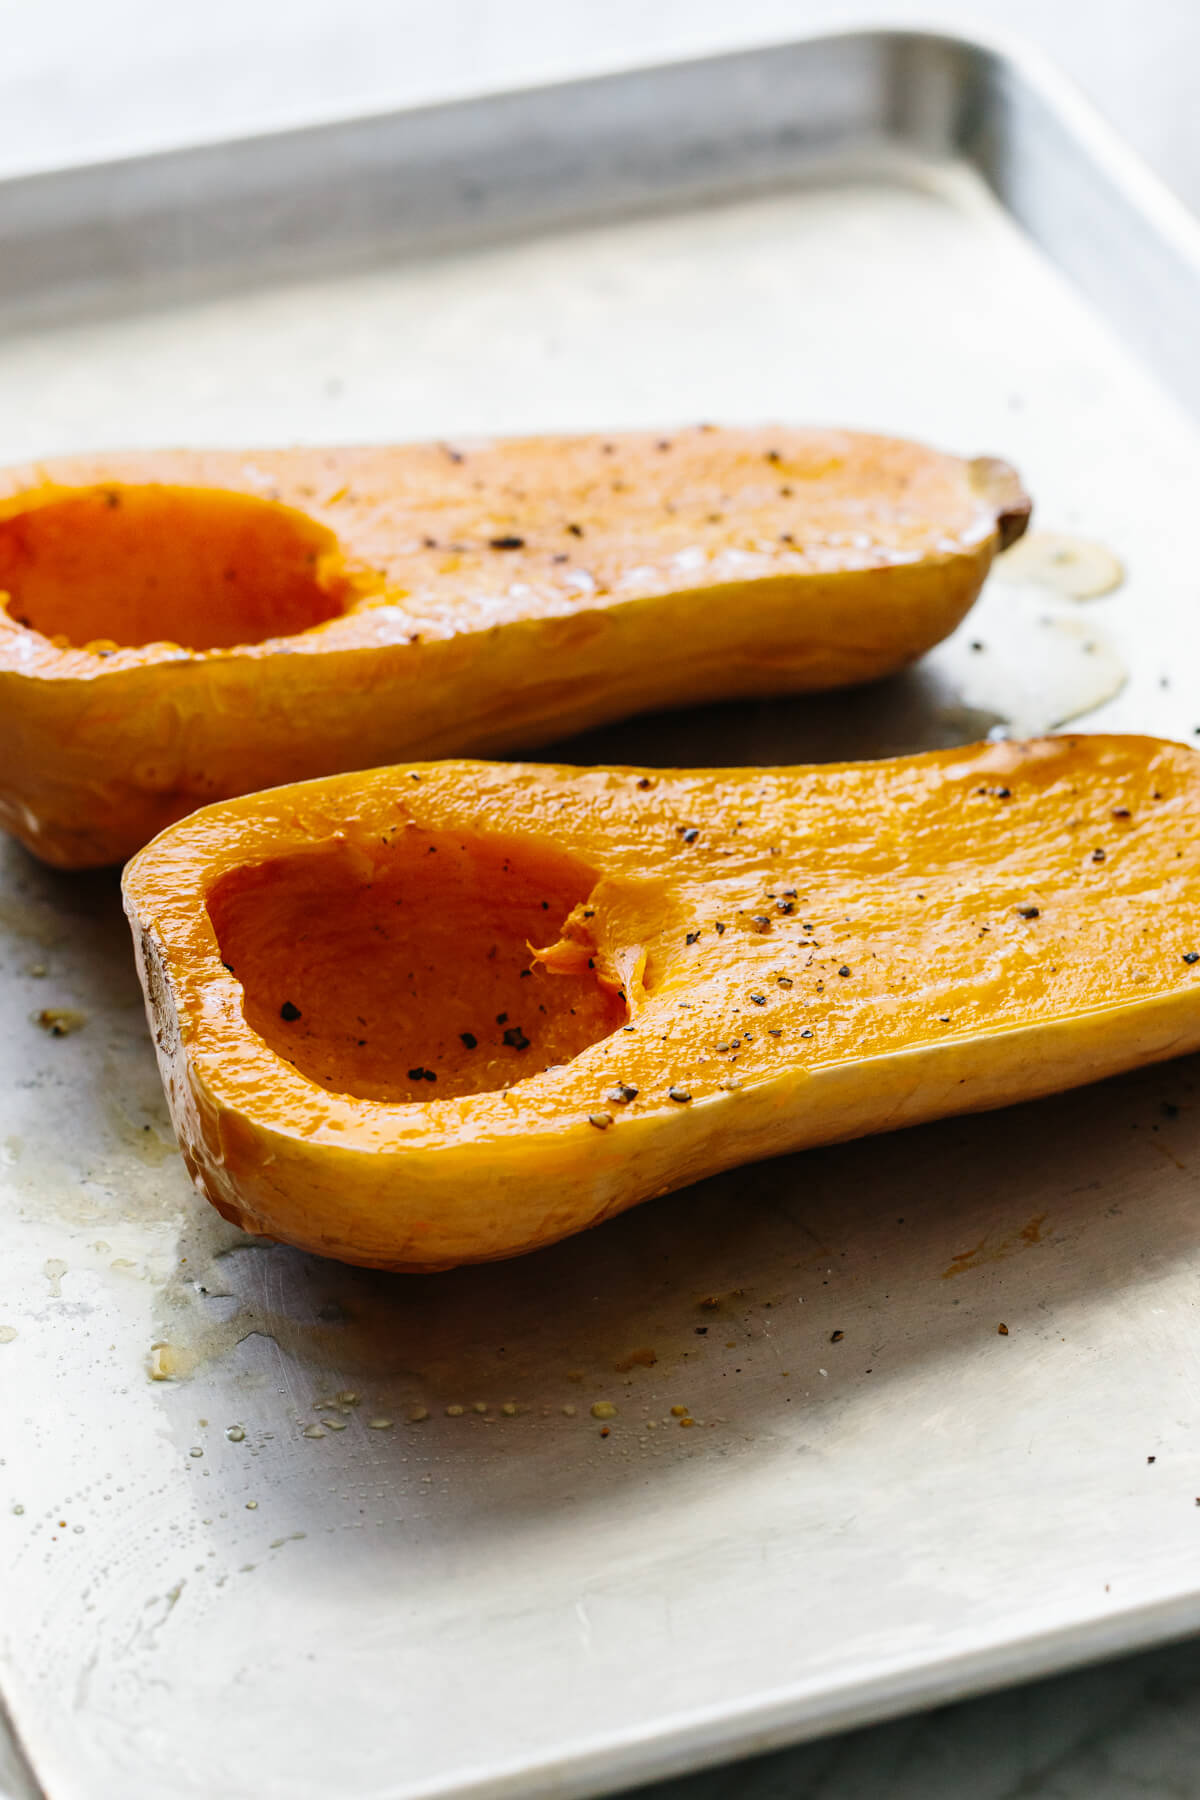 Roasted butternut squash fresh out of the oven.